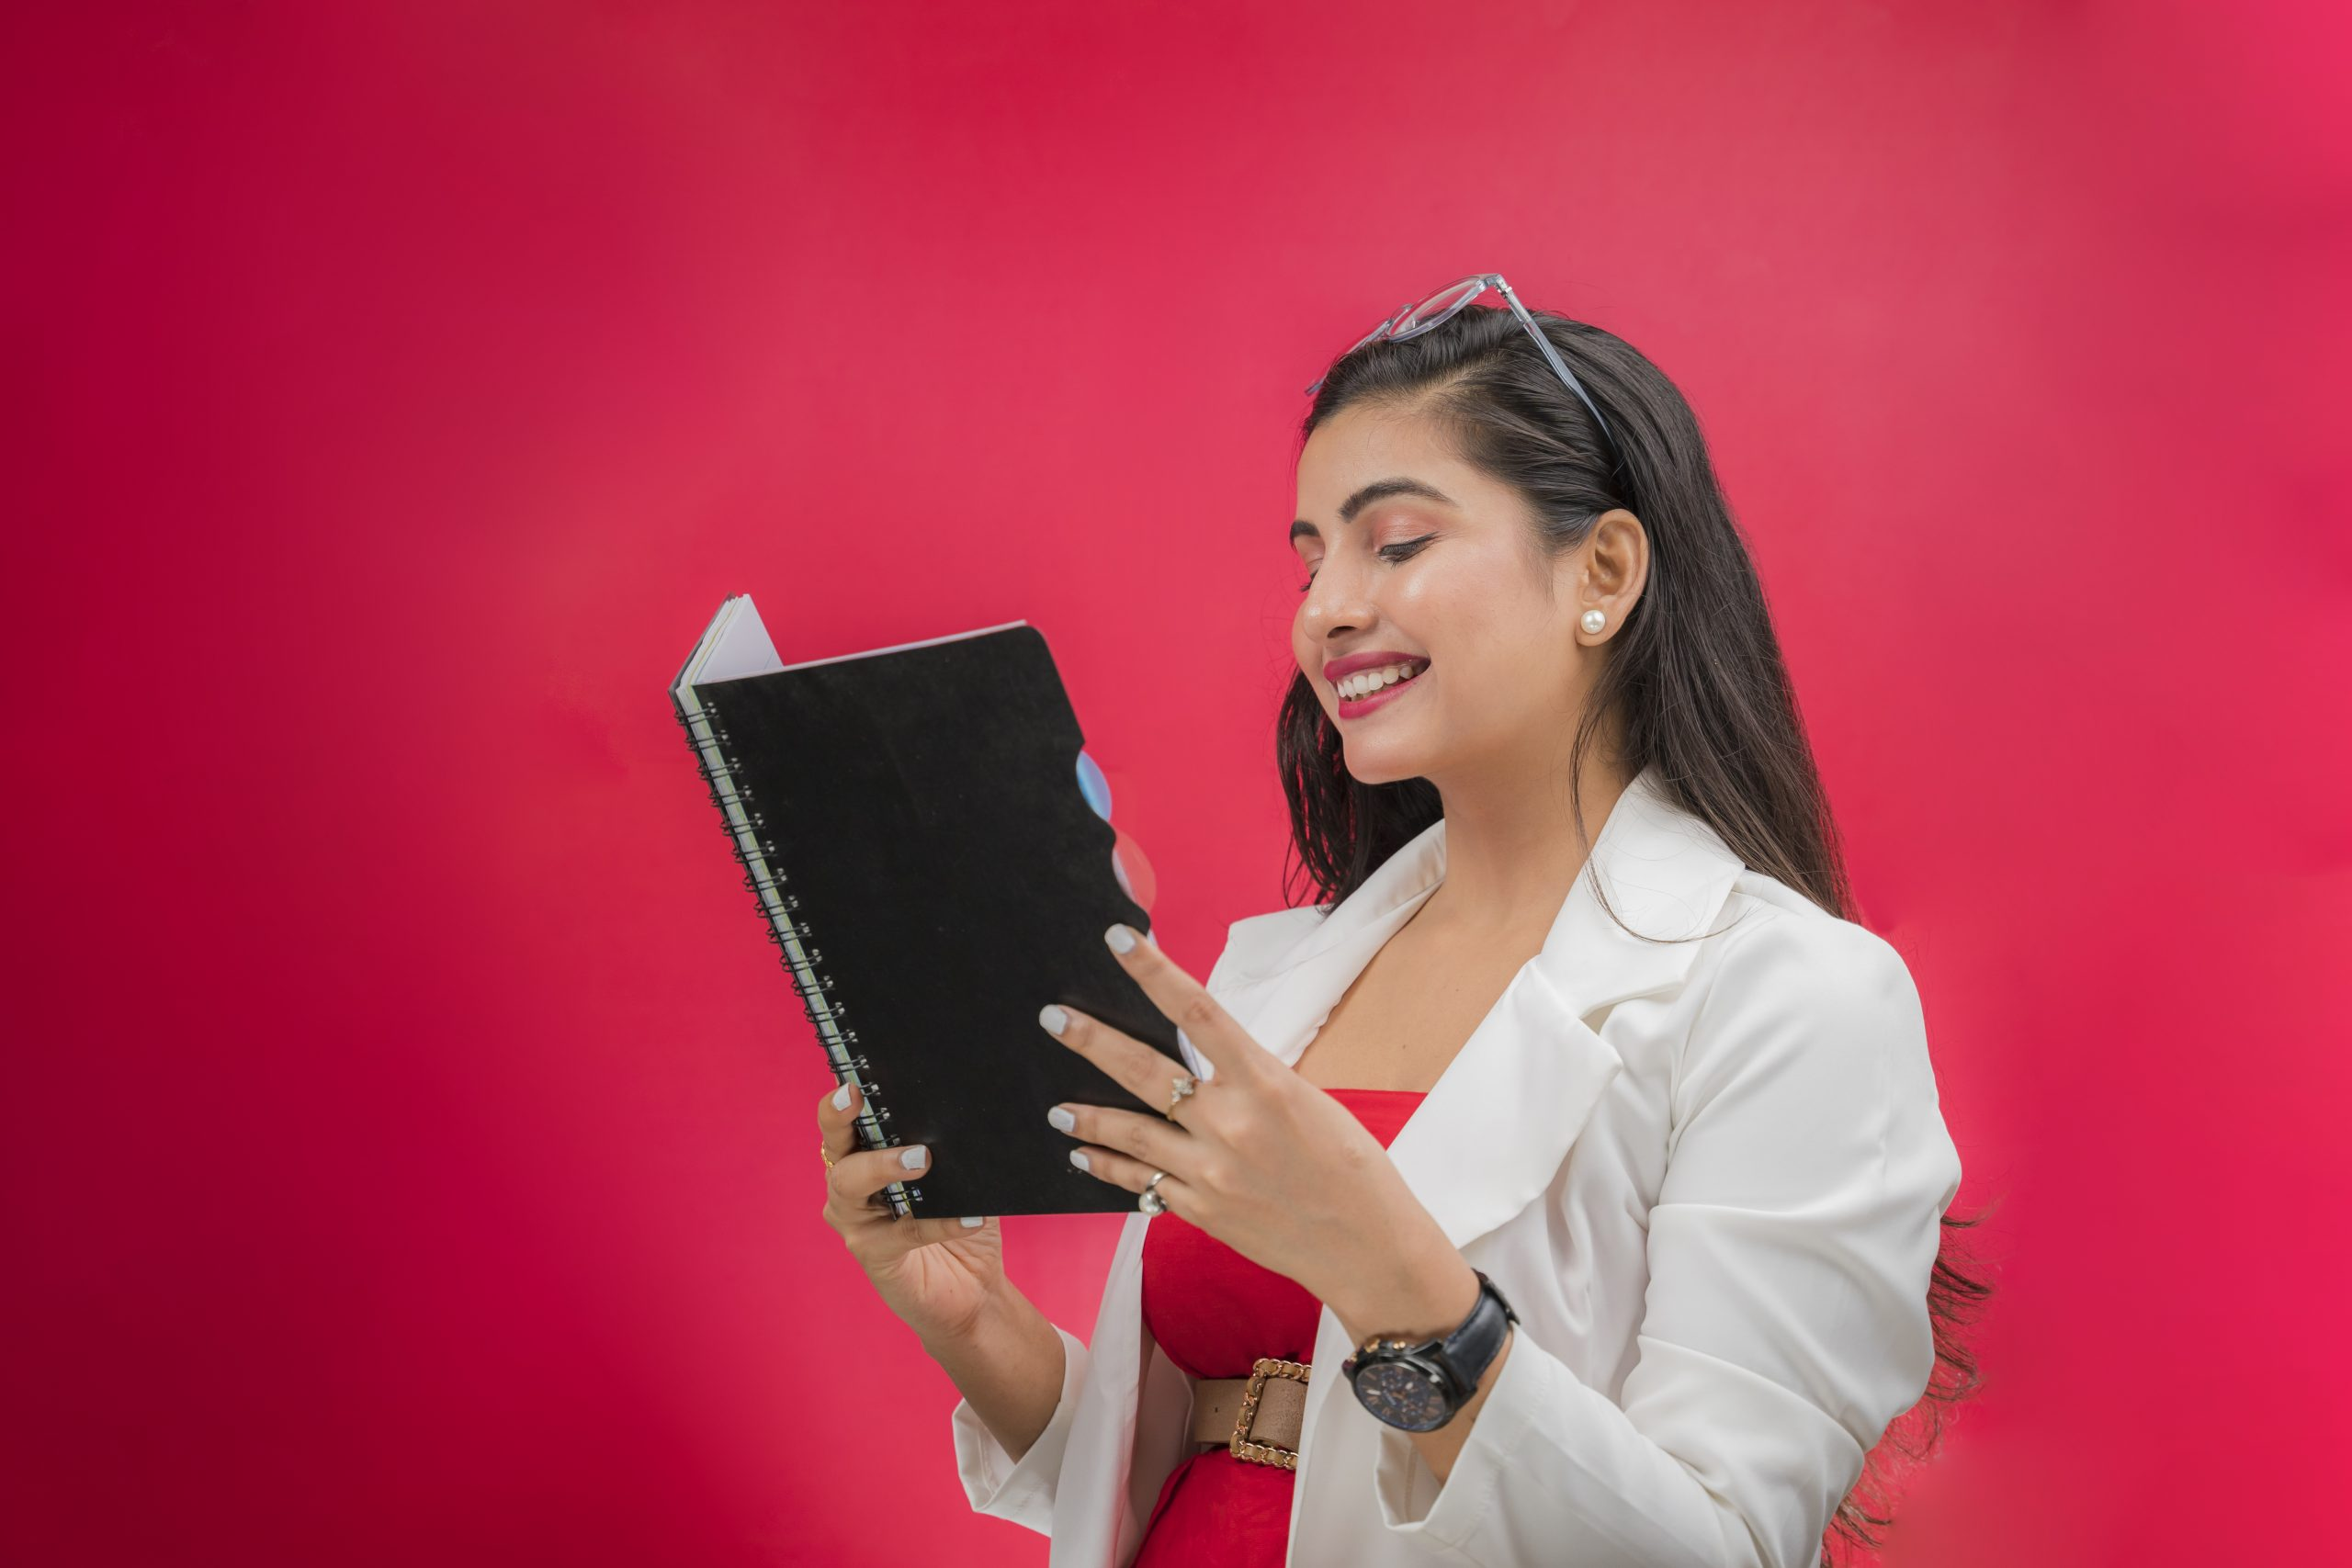 Woman smiling while reading book